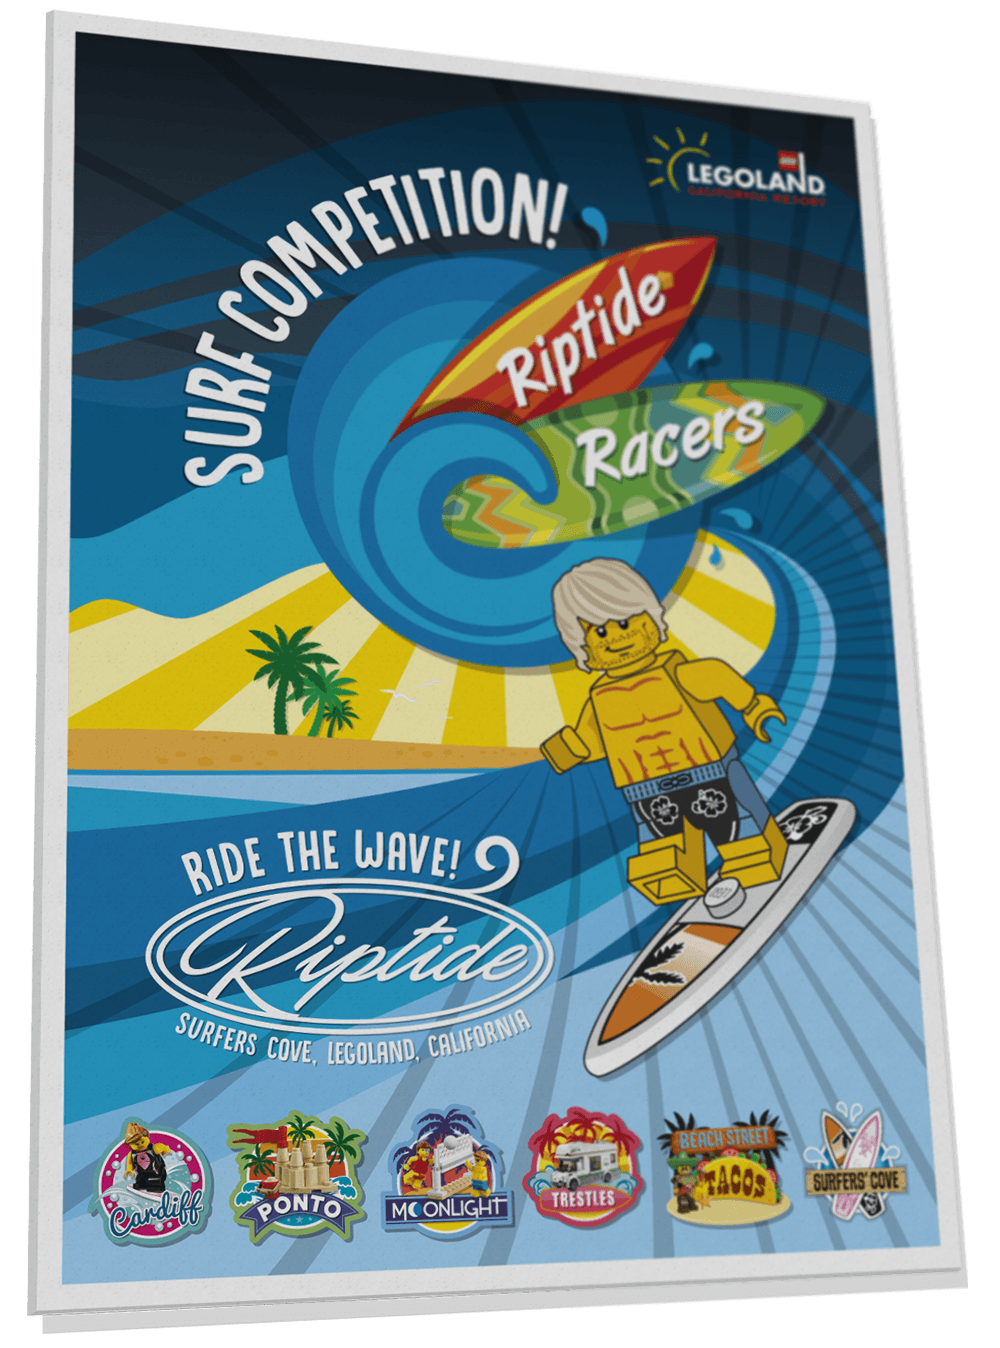 Riptide Racers surfing competition poster for Surfers' Cove